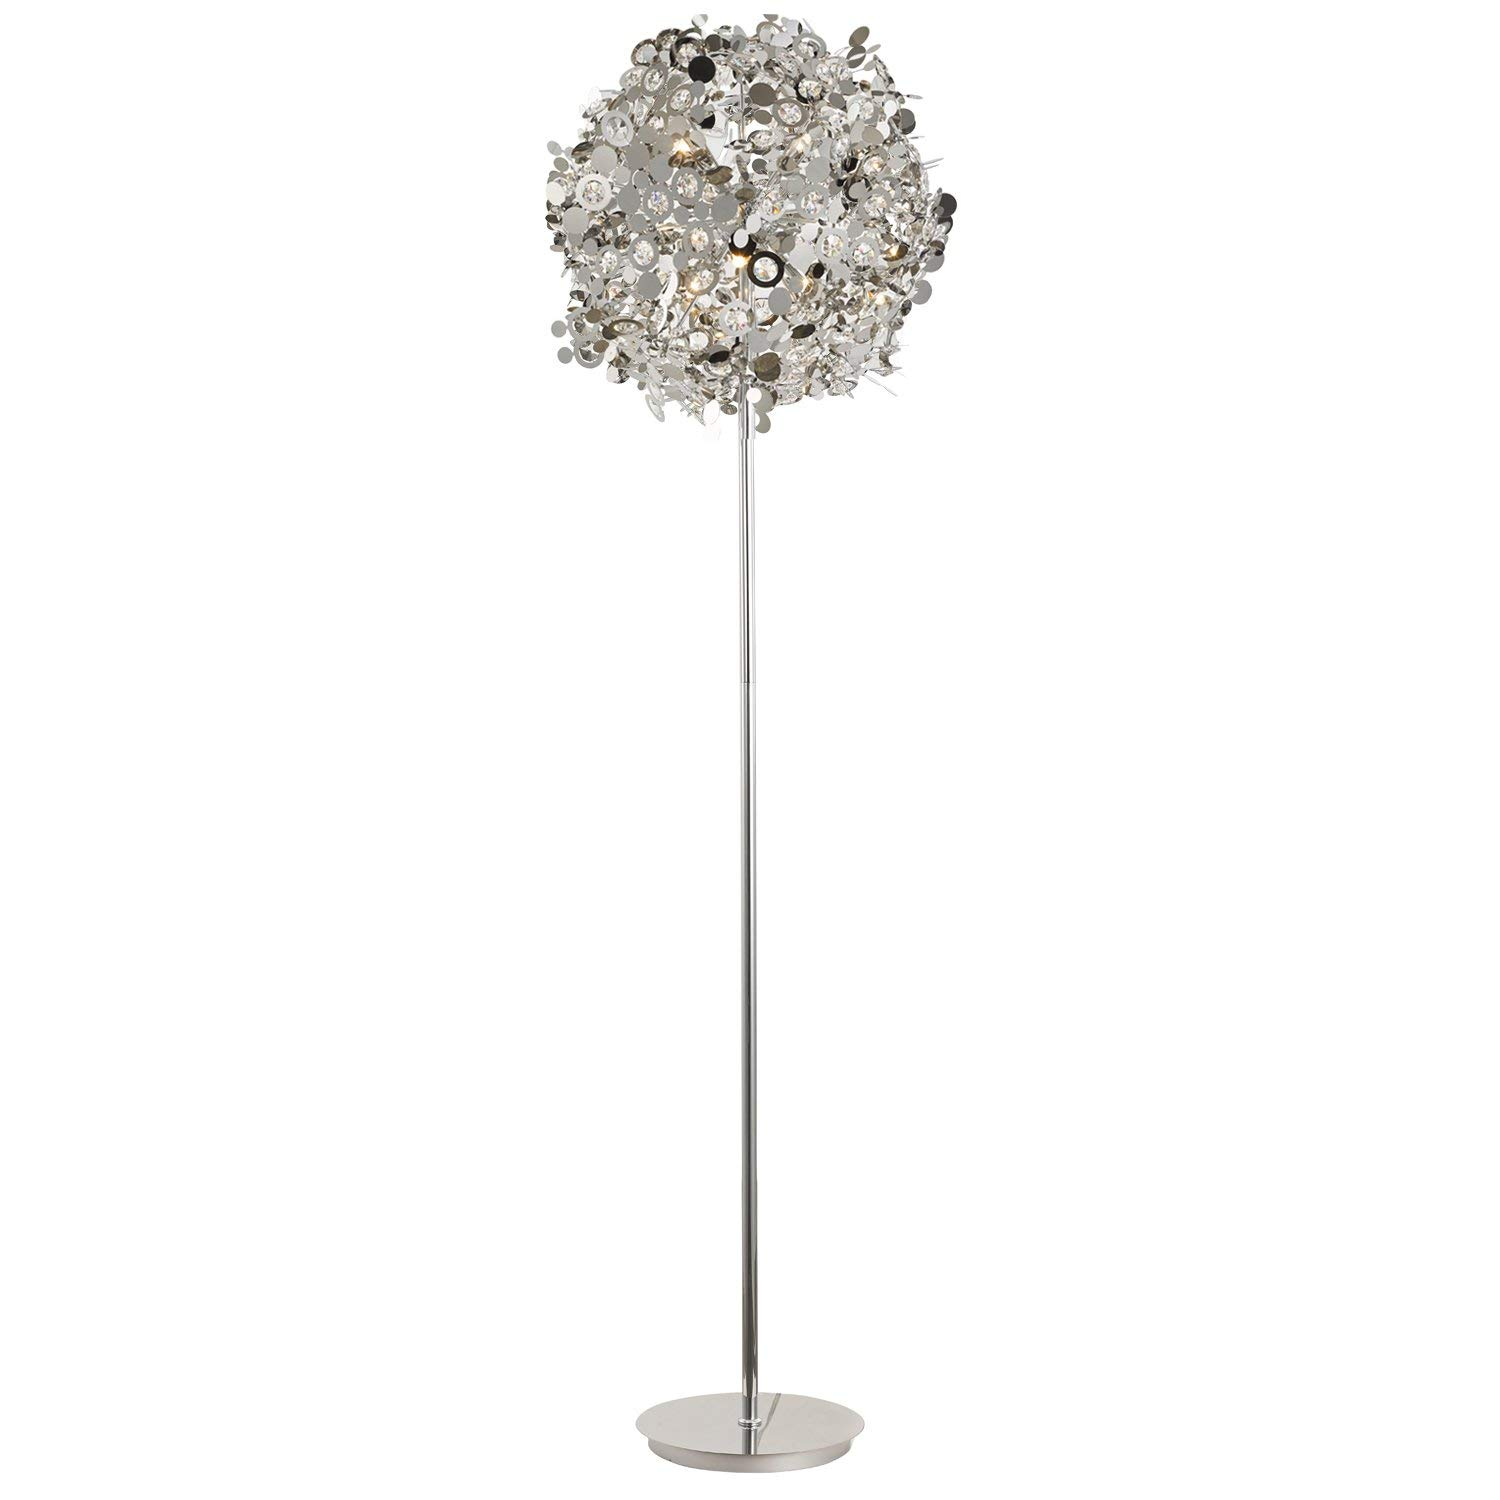 N3 Lighting Flower Ball Decorative G9 Floor Lamp, Metal Chrome Sheets with Crystal, Reading Lamp, Modern Design Tall Standing Pole Uplight Lamp Light for Living Room, Dorm, Bedroom, and Office